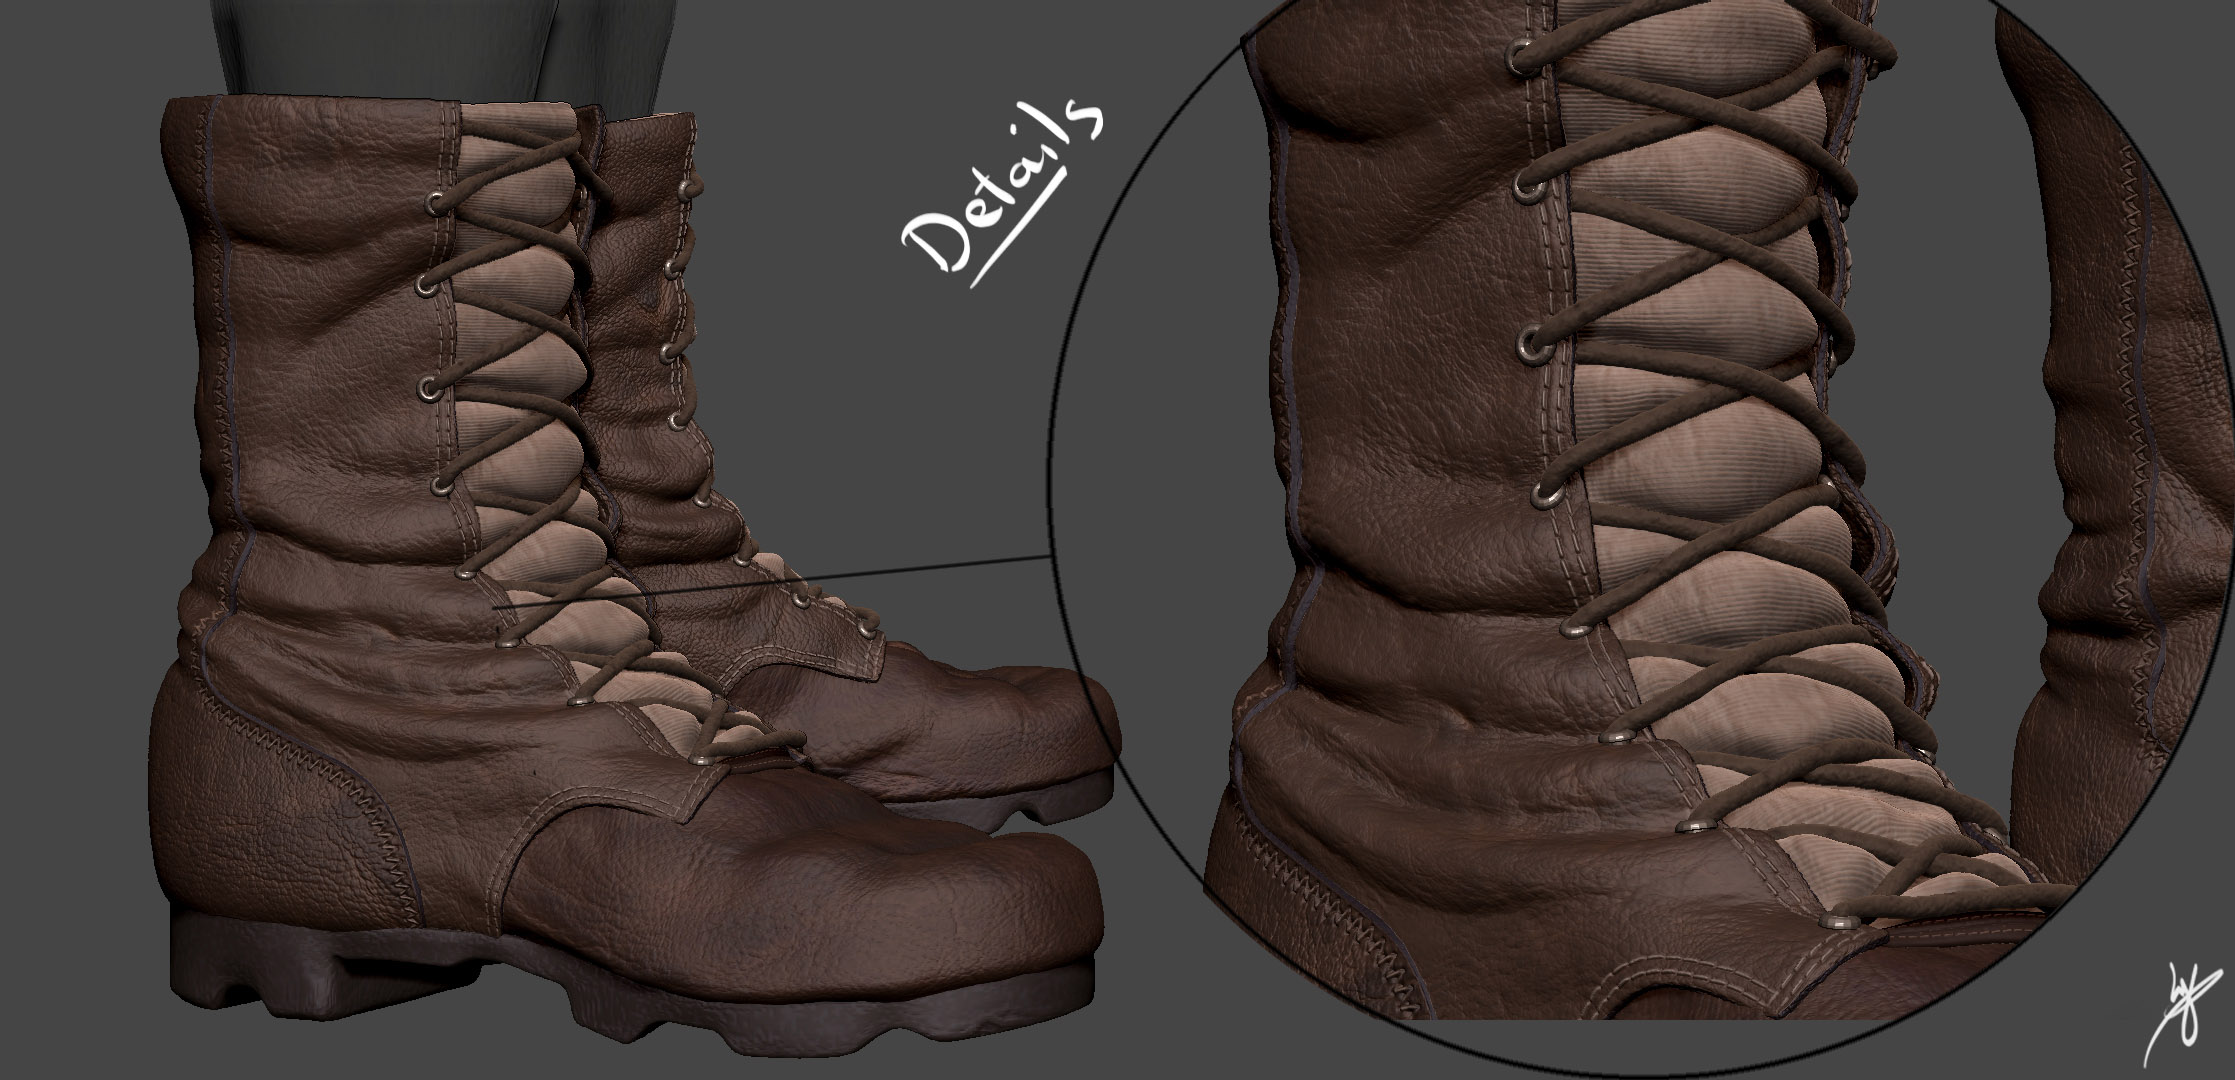 Zbrush_boots_2s.jpg